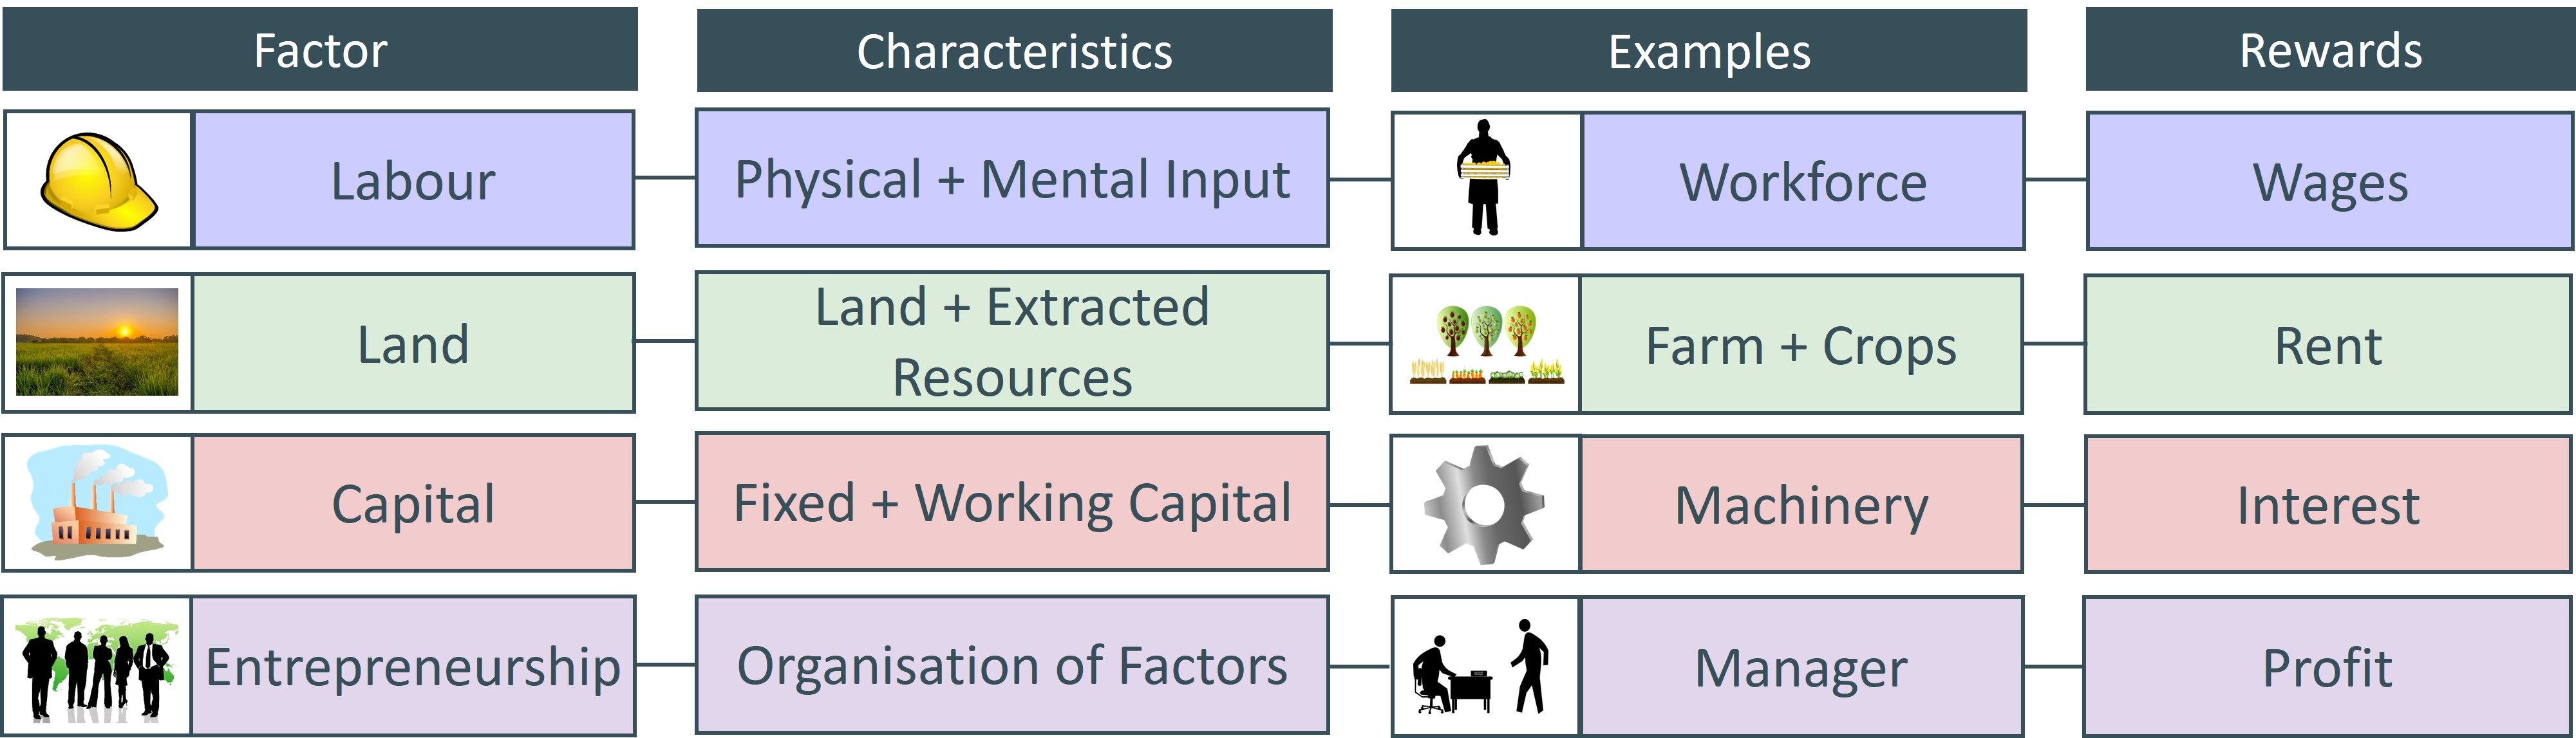 factors of quality